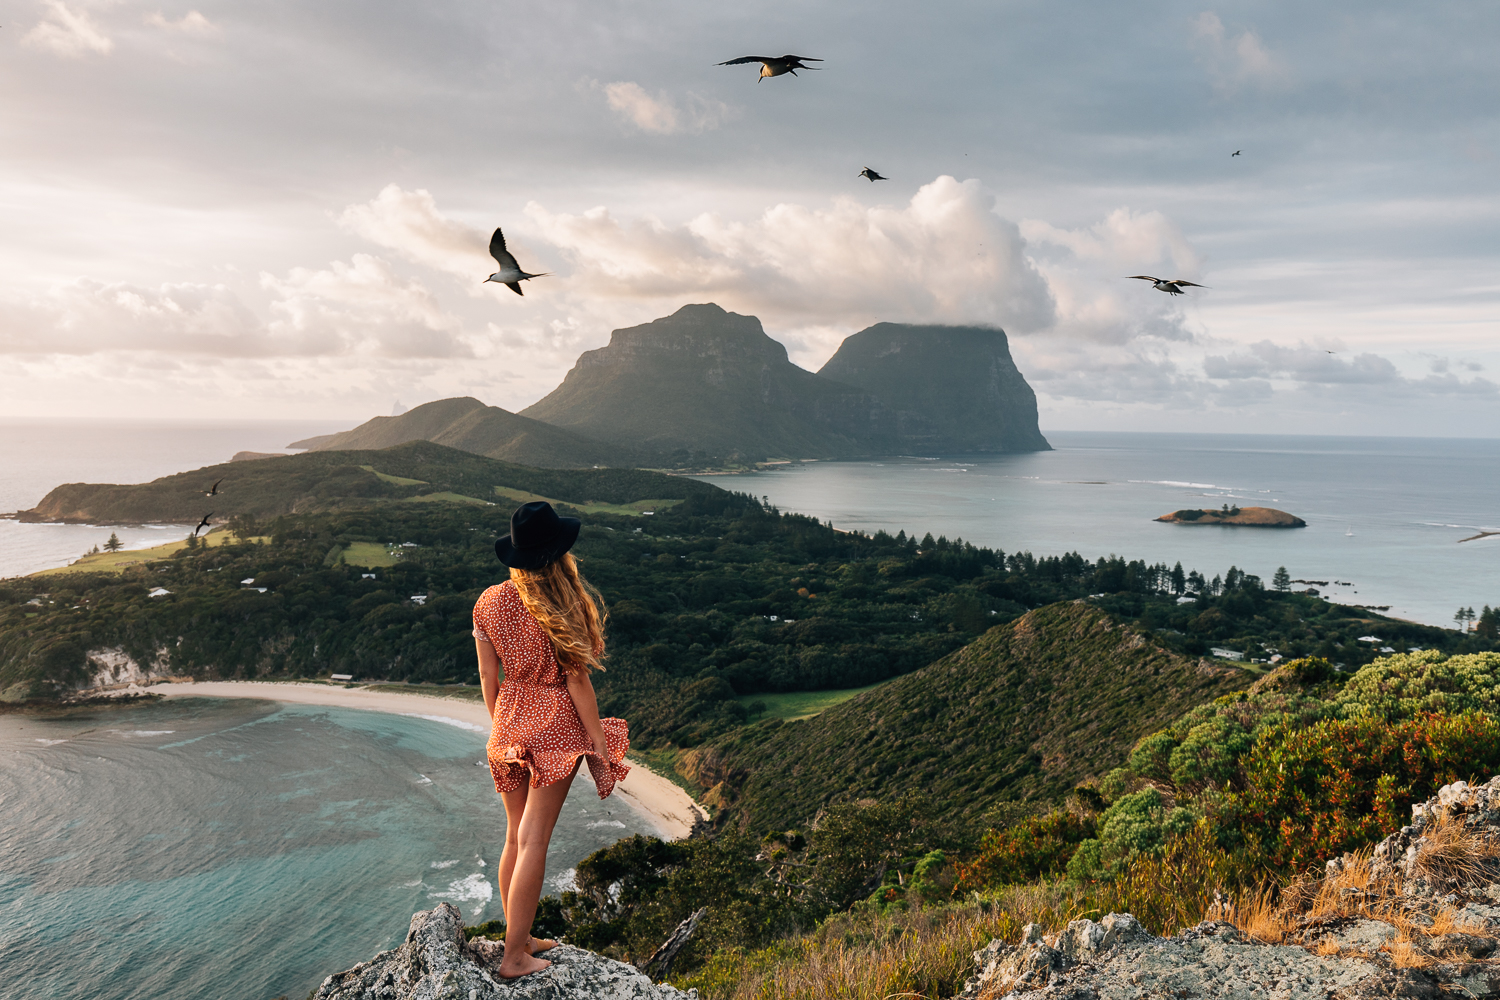 37 Photos That Will Inspire You to Visit Australia's Lord Howe Island